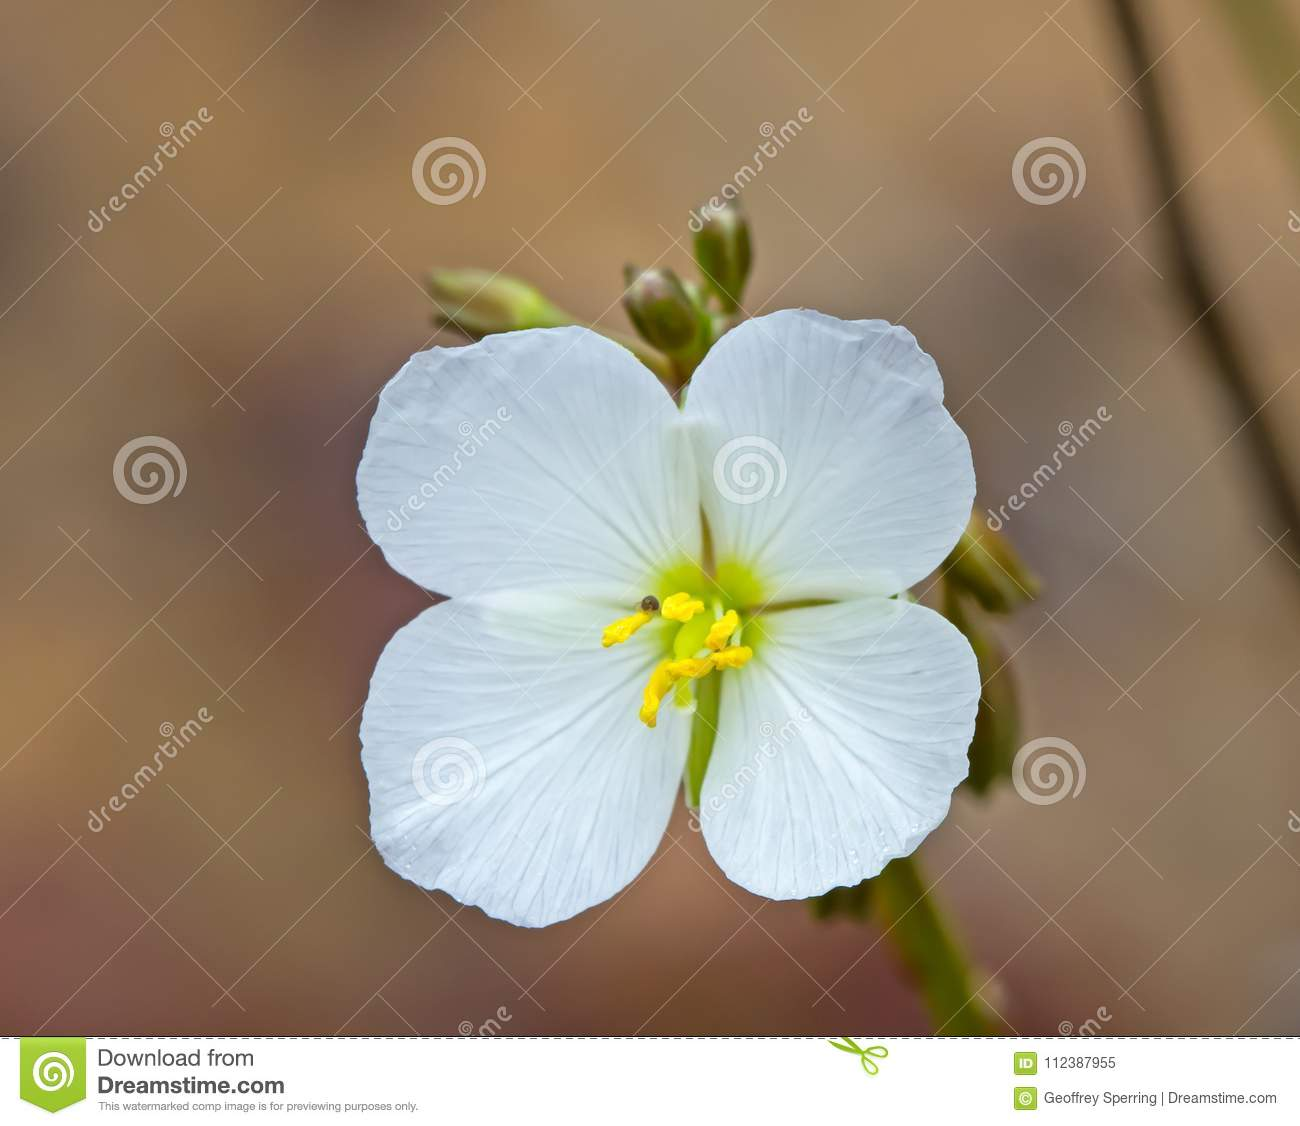 White flowering mustard plant stock image image of destination white mustard plant flower with yellow stamen and four petals mightylinksfo